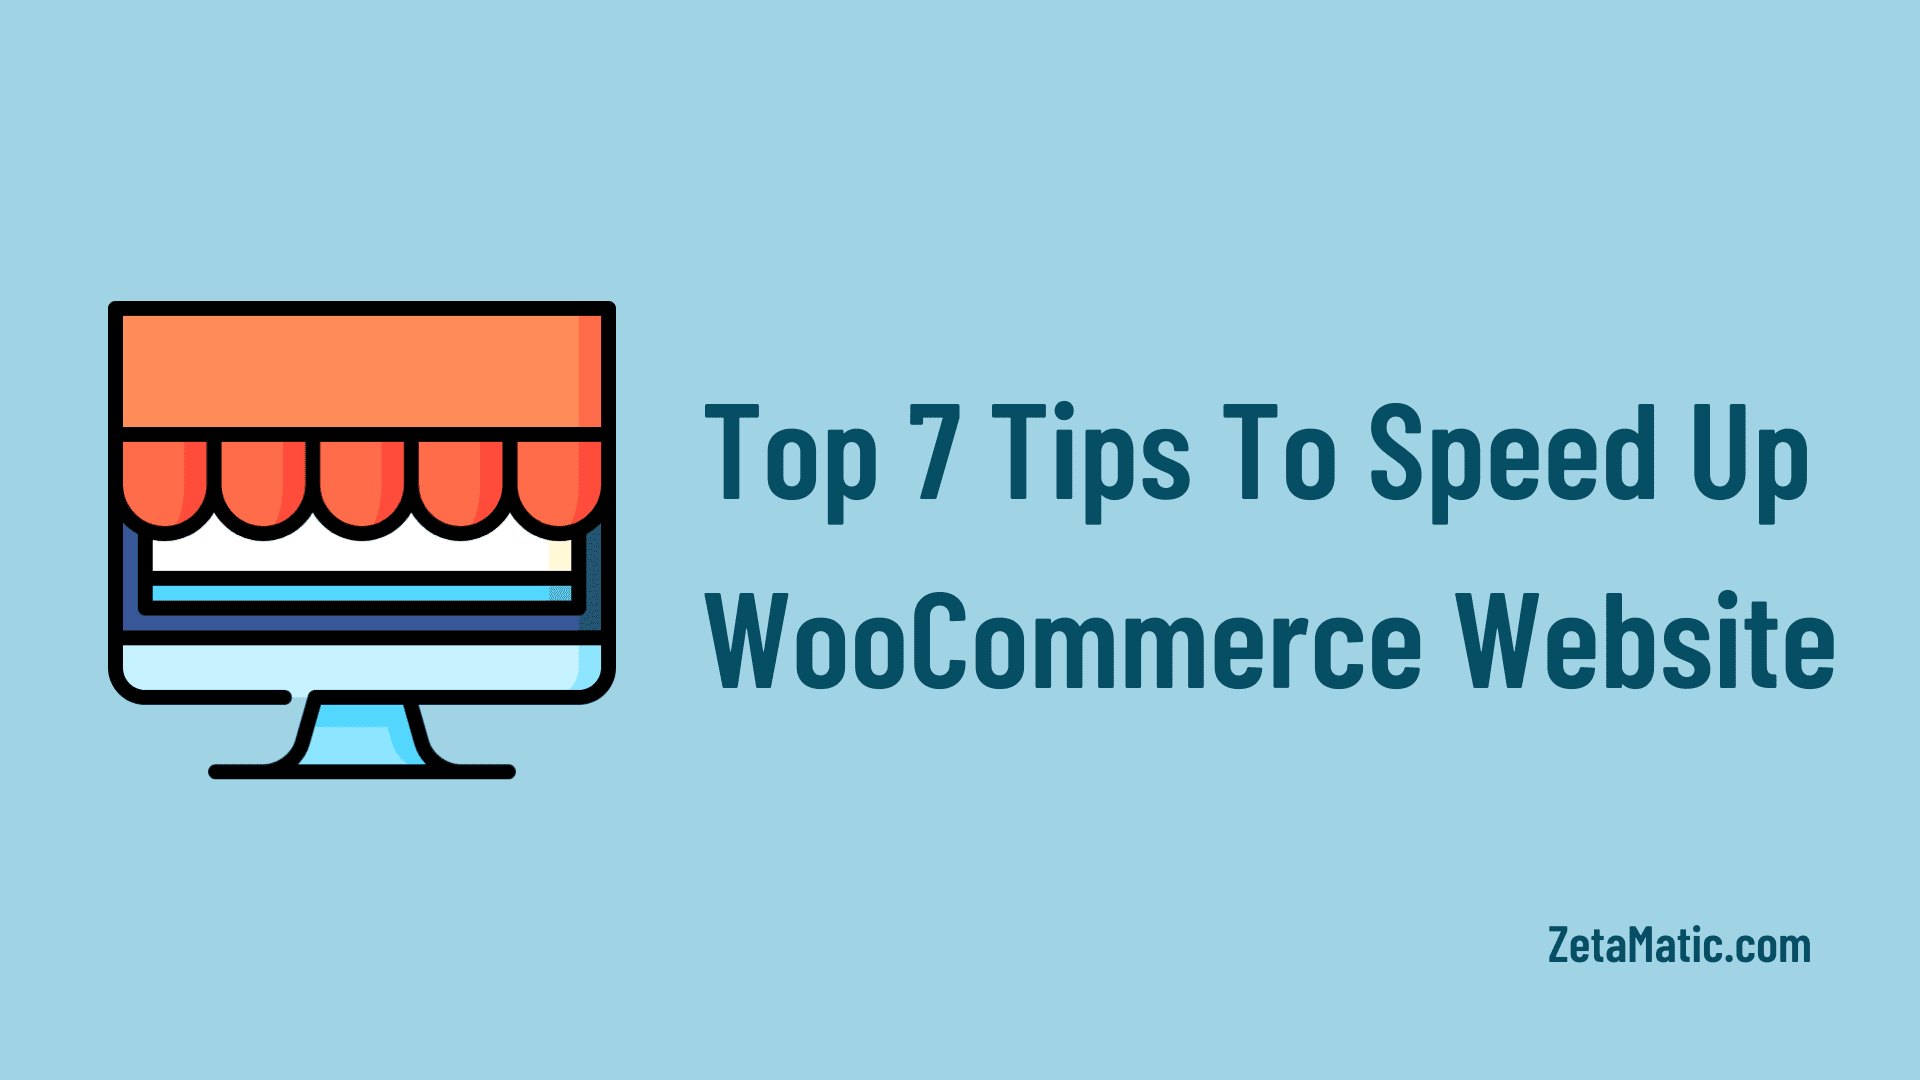 Top 7 Tips To Speed Up WooCommerce Website